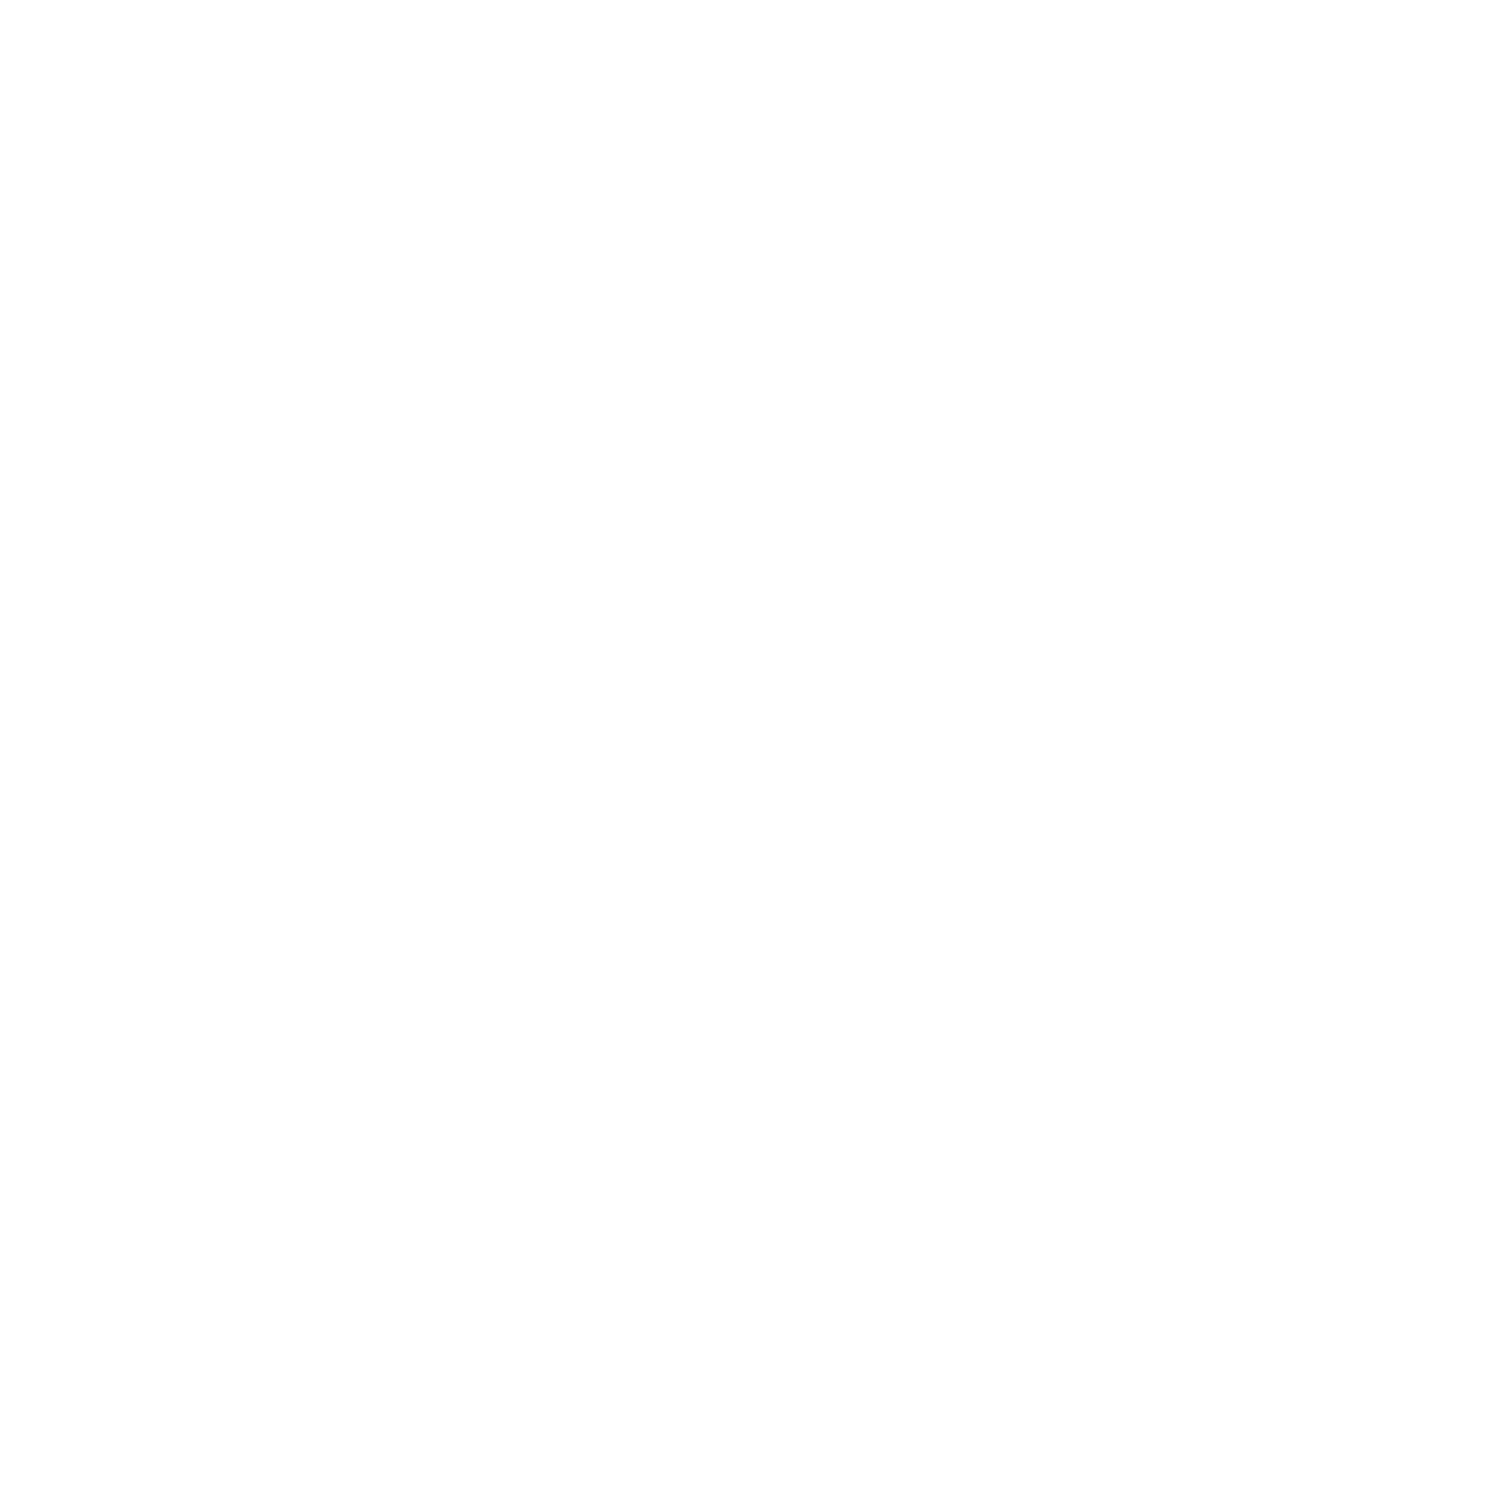 Hunters Point Civic Association